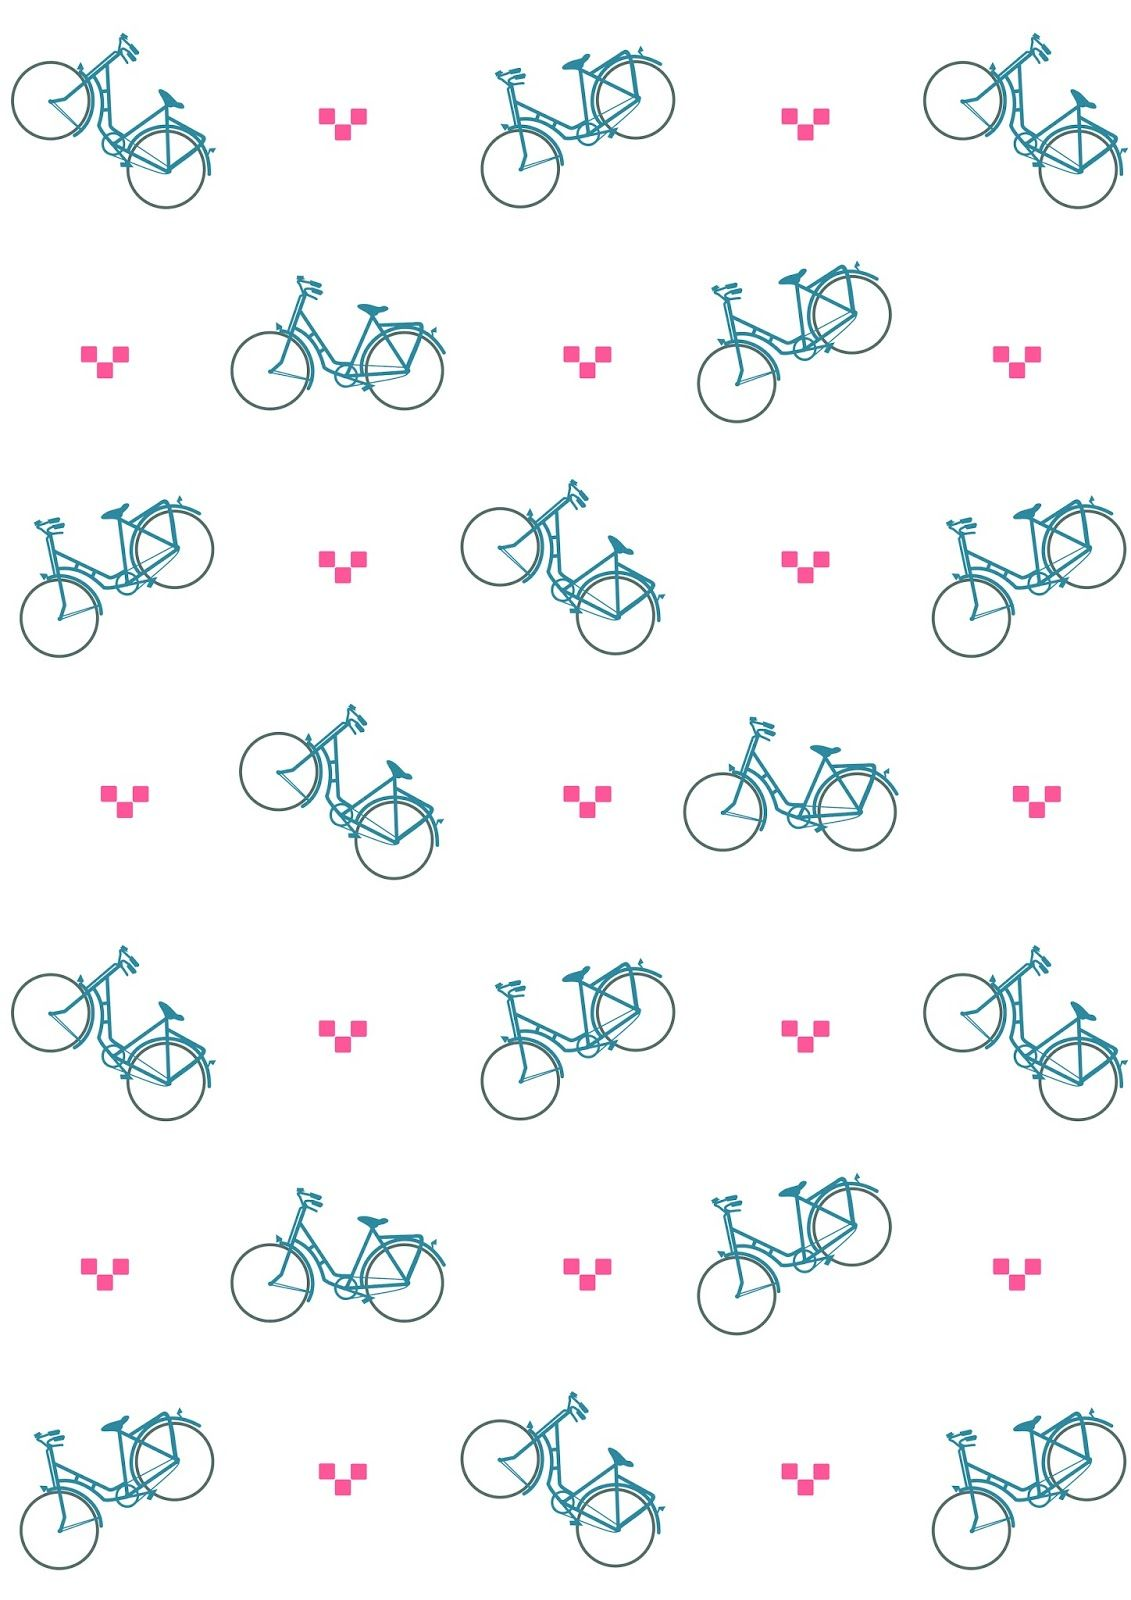 Free digital bicycle scrapbooking paper ausdruckbares png und clipart free digital and printable png and scrapbooking elements for paper crafting for digital scrapbooking and card making jeuxipadfo Choice Image